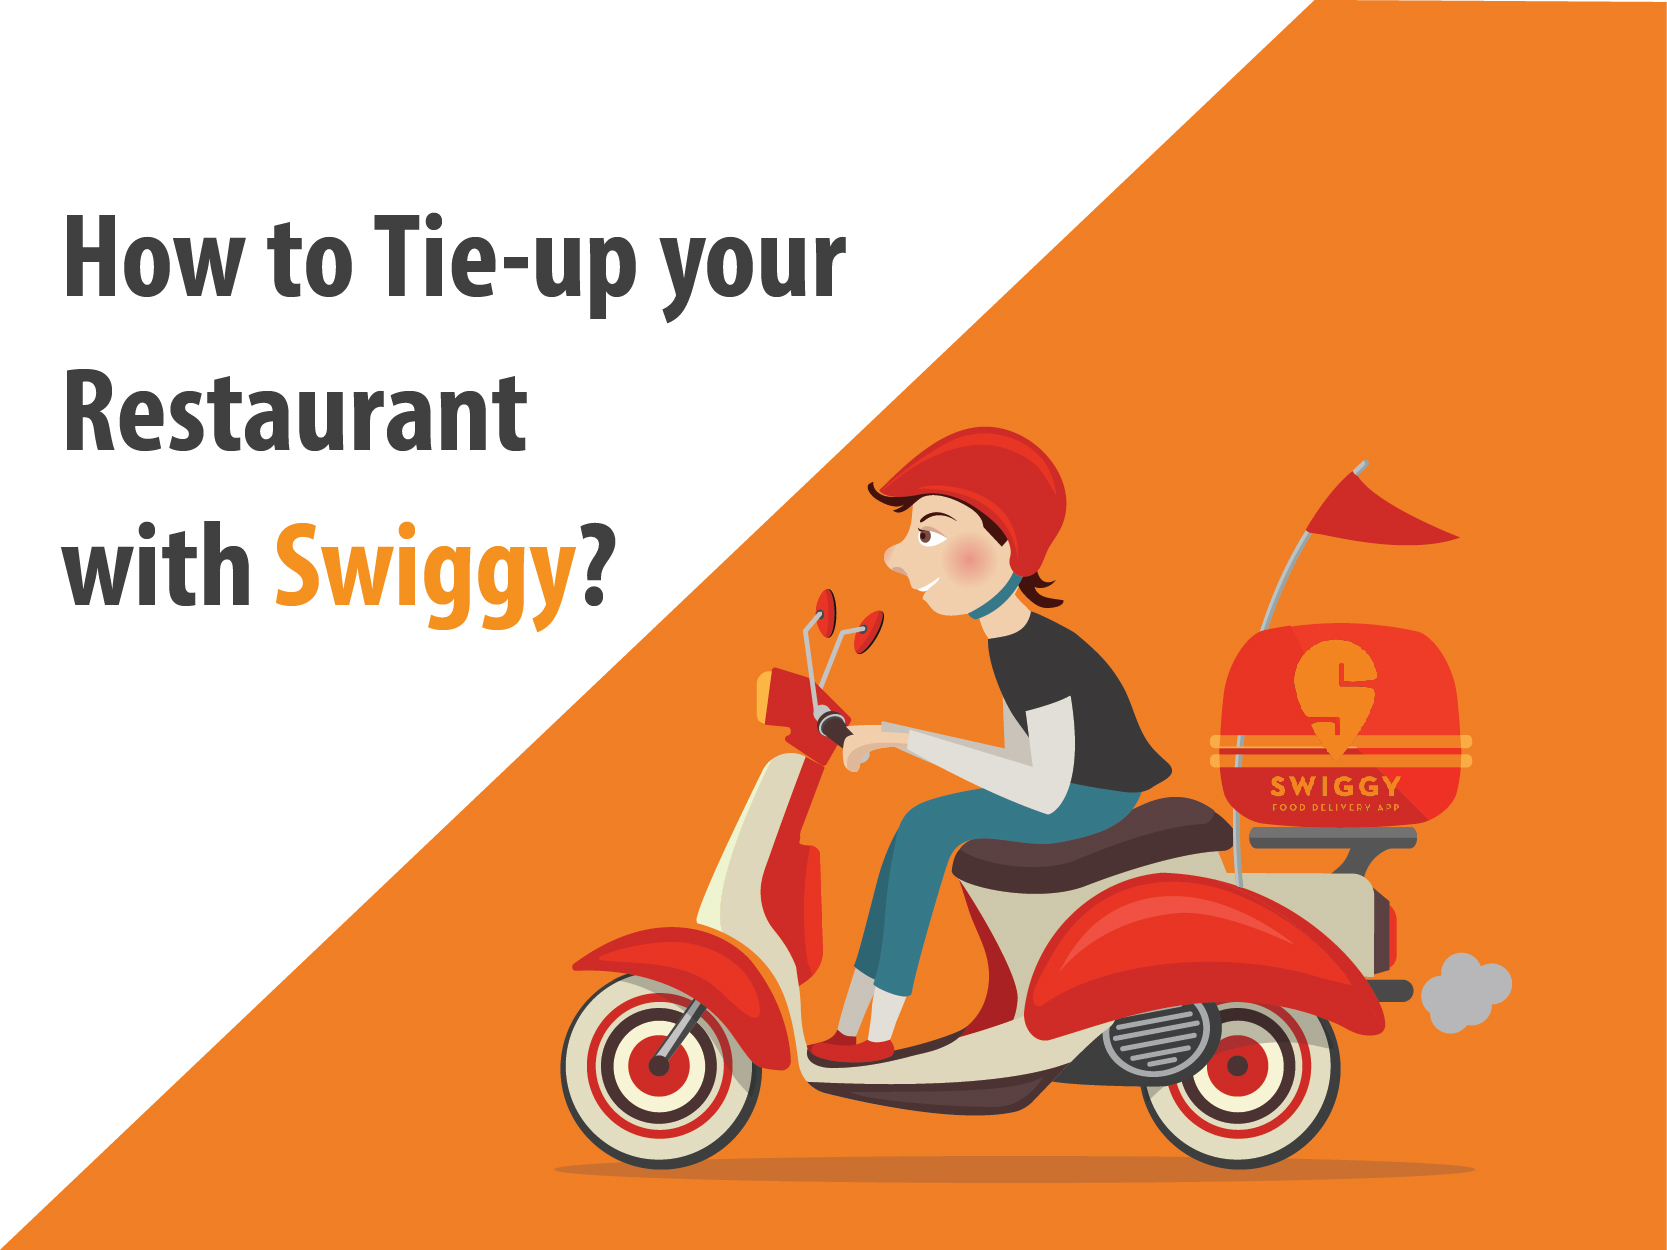 How to Tie-up a Restaurant with Swiggy? (Step by Step Guide)